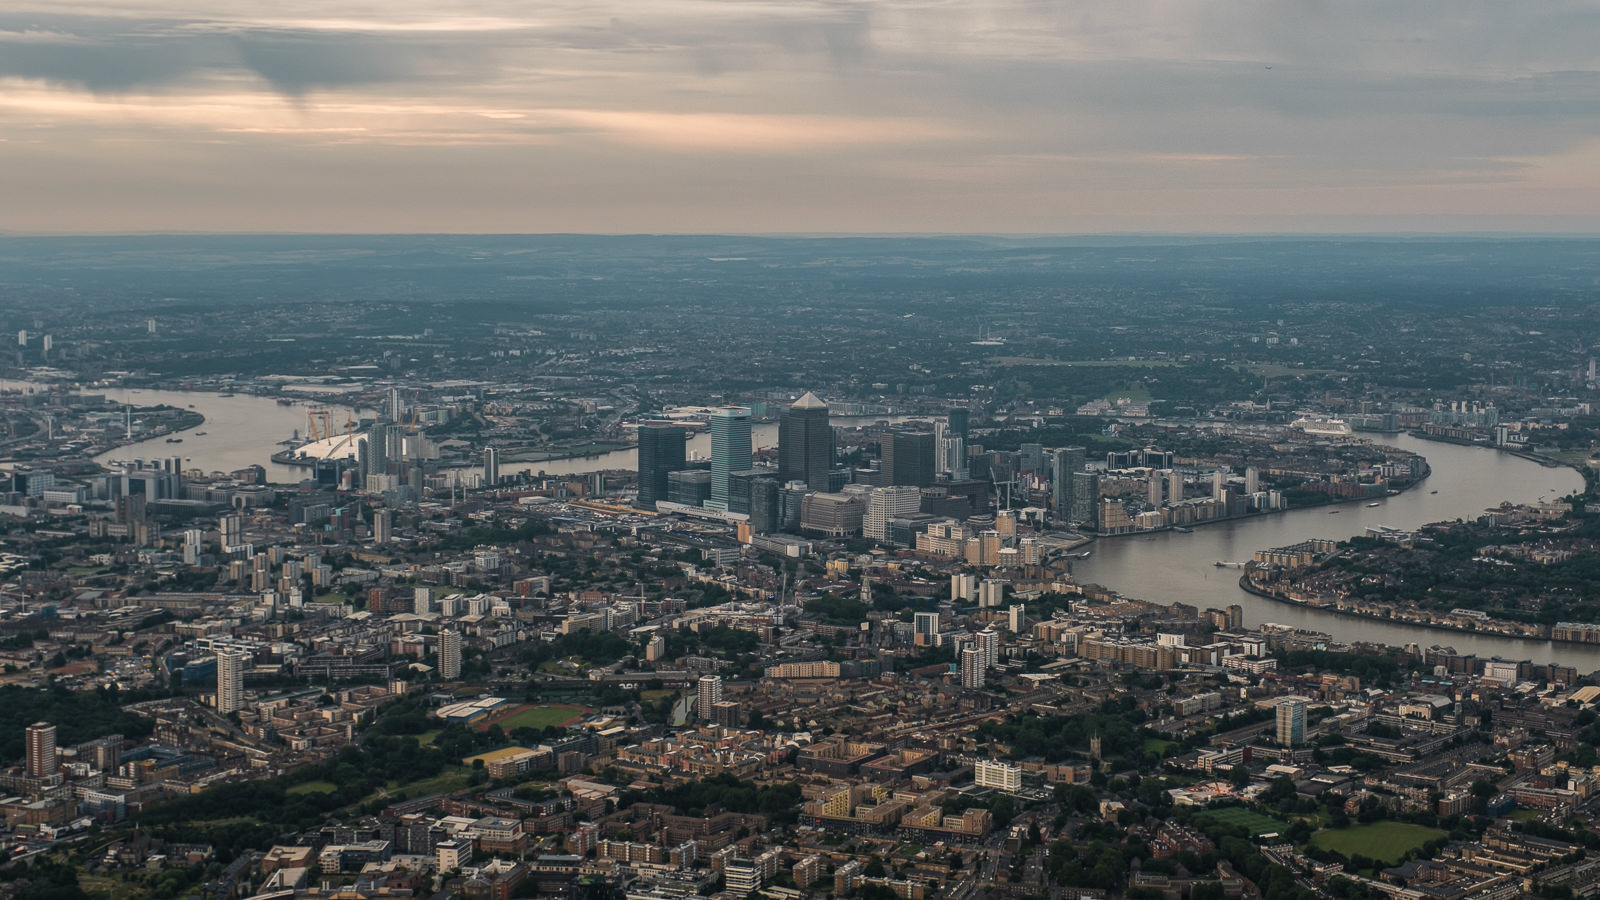 Docklands - Canary Wharf and North Greenwich. ISO200 16-55mm f5.6 1/250s